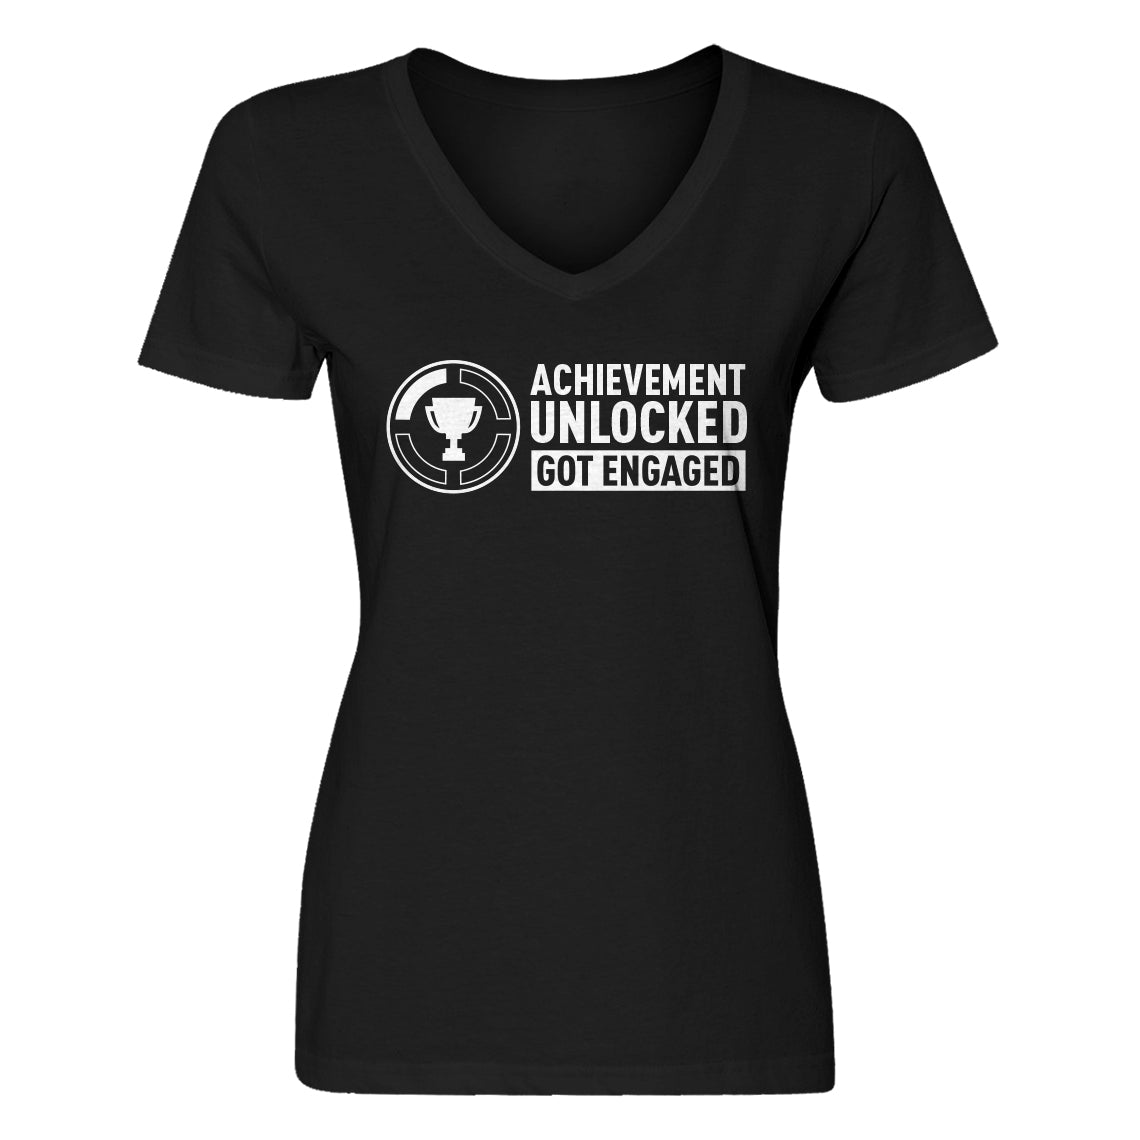 Womens Achievement Unlocked Got Engaged V-Neck T-shirt